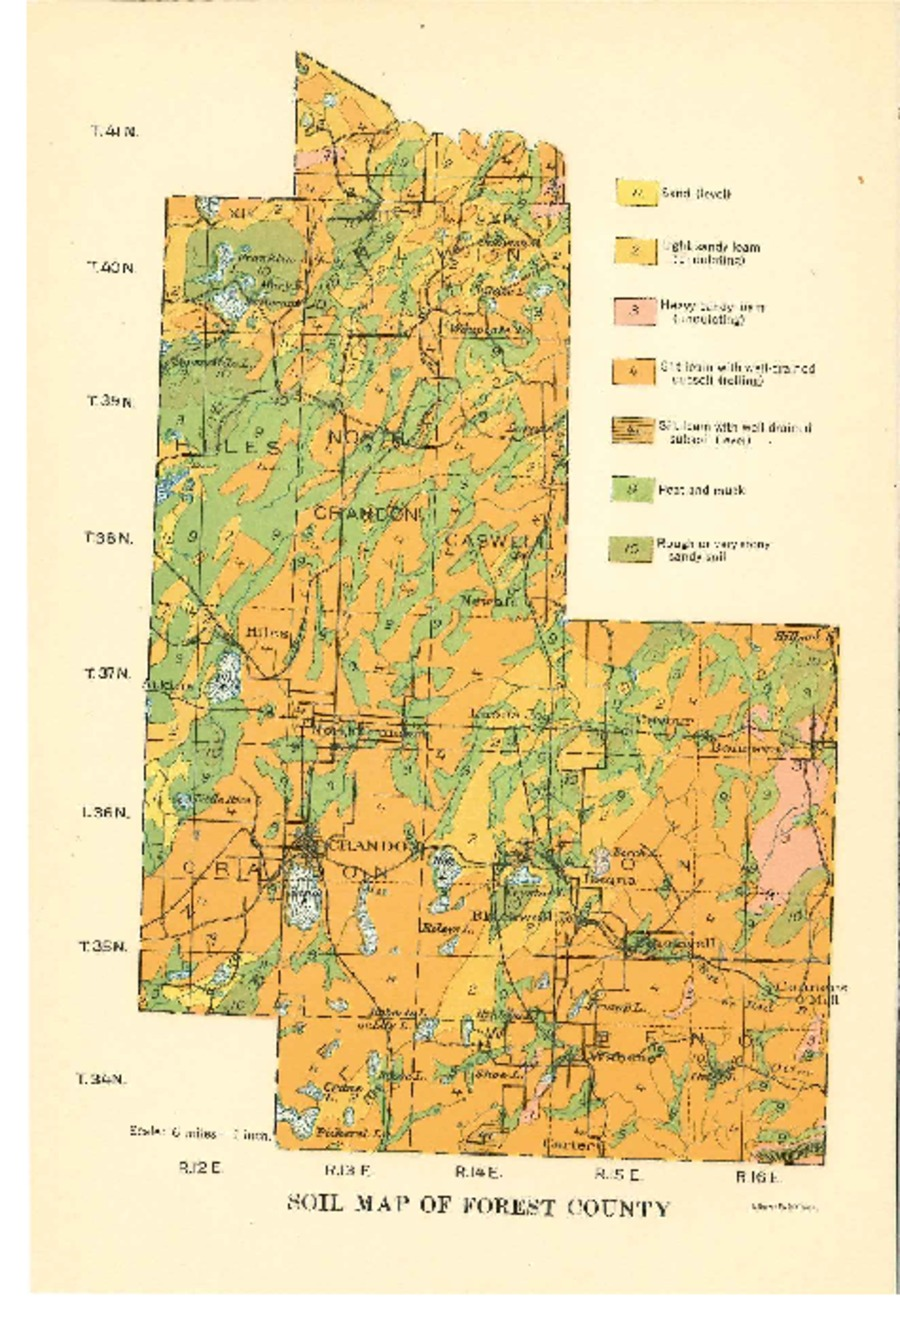 further  together with WIVUCH Maps and Forms as well Wisconsin Geological   Natural History Survey » Soil Maps of likewise List of counties in Wisconsin   Wikipedia in addition  also  in addition Map of counties in wisconsin and travel information   Download free likewise Graphic Parts Of Political Map Scrambled Google Wisconsin Counties further Wisconsin Geological   Natural History Survey » Soil Maps of together with Wisconsin Geological   Natural History Survey » Soil Maps of moreover  besides Milwaukee County  Wisconsin  Map additionally WISCONSIN  State map showing counties  Inset Geological  Britannica moreover map of wisconsin counties – Help You witt Maps together with Map Of And Minnesota Wisconsin Counties – efcopower info. on wisconsin counties map